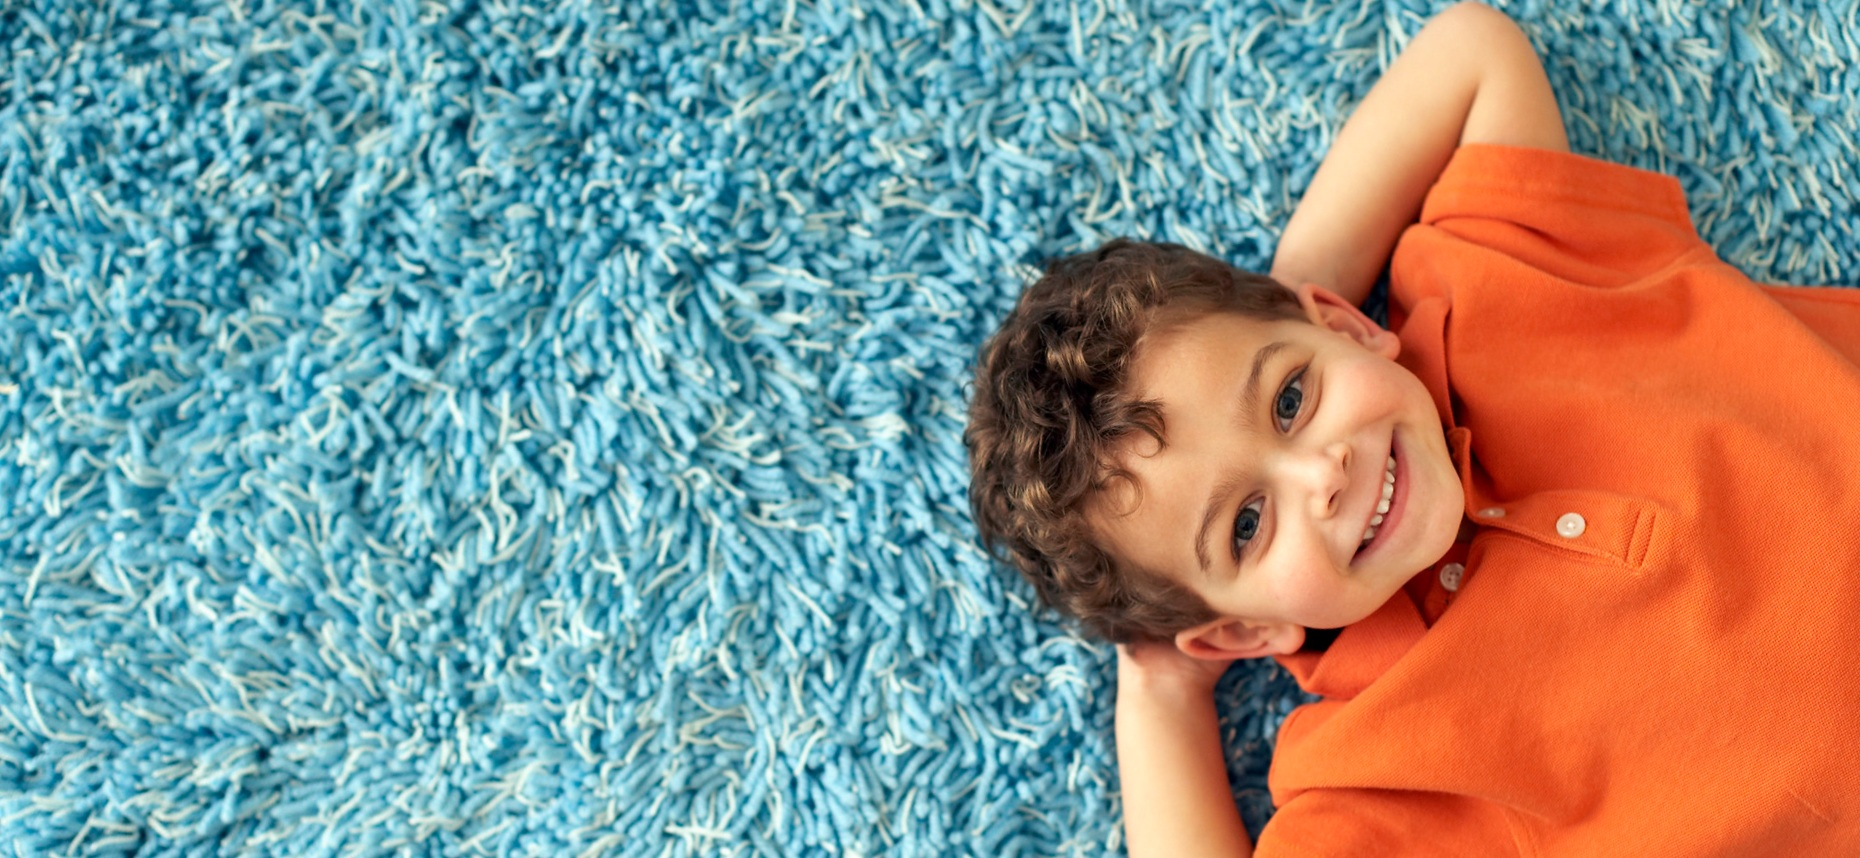 CARPET CLEANING - FREQUENTLY ASKED QUESTIONS